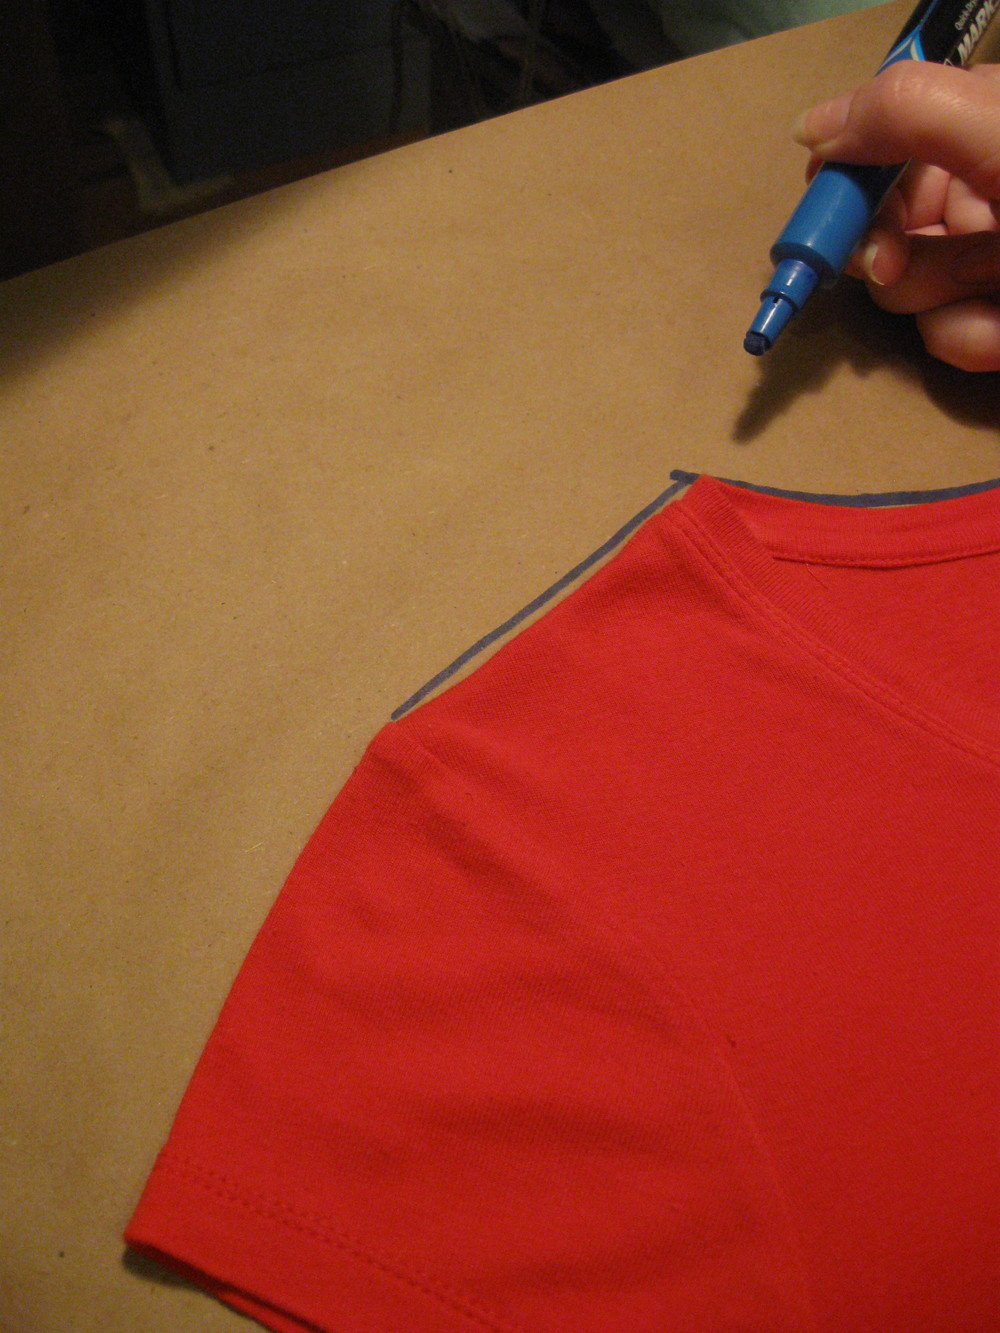 Trace the shoulder area. Again, begin at the seam line of the sleeve and body, as shown.